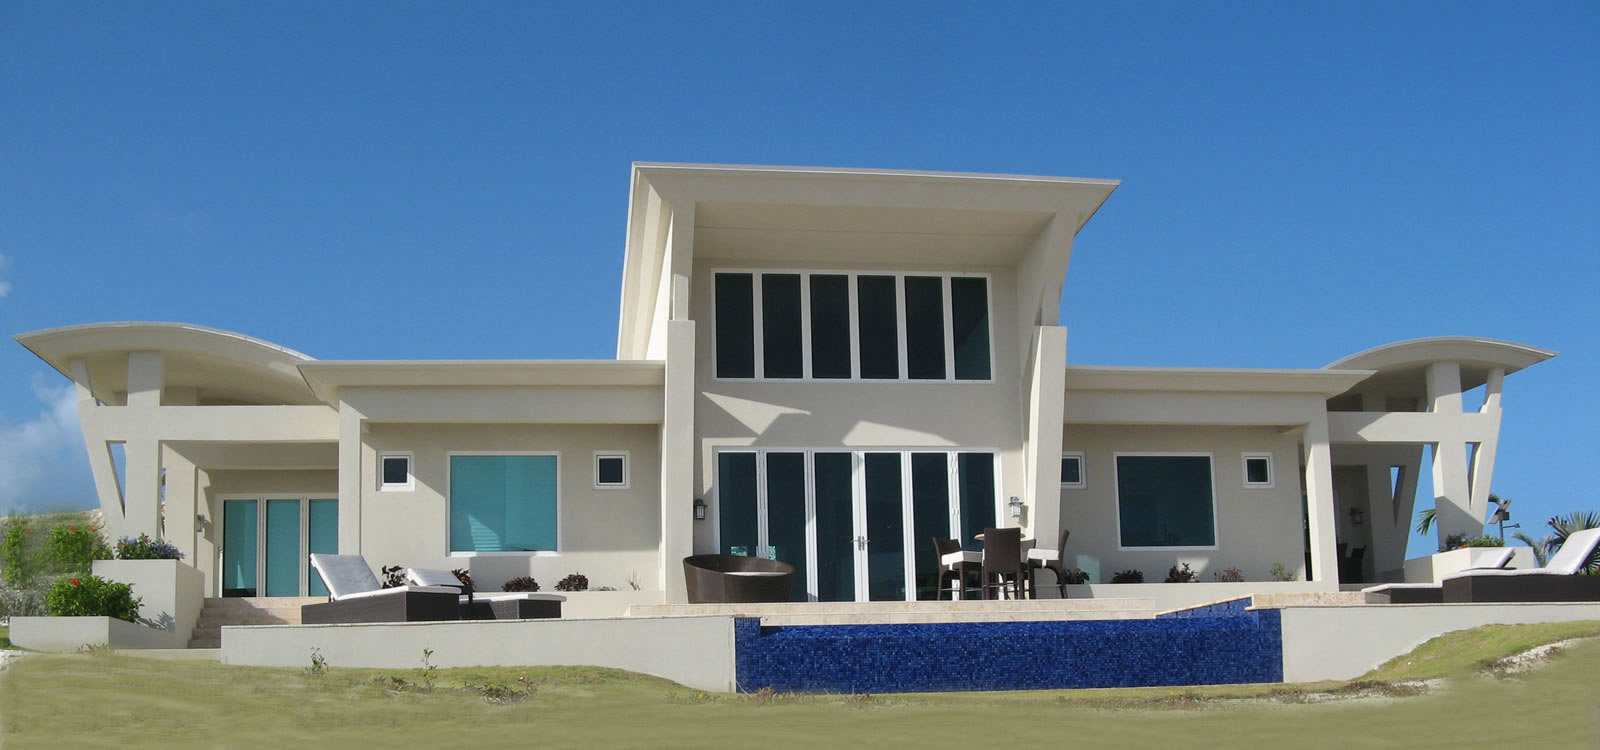 4 Bedroom Beachfront Home for Sale, Eleuthera, The Bahamas  7th Heaven Properties